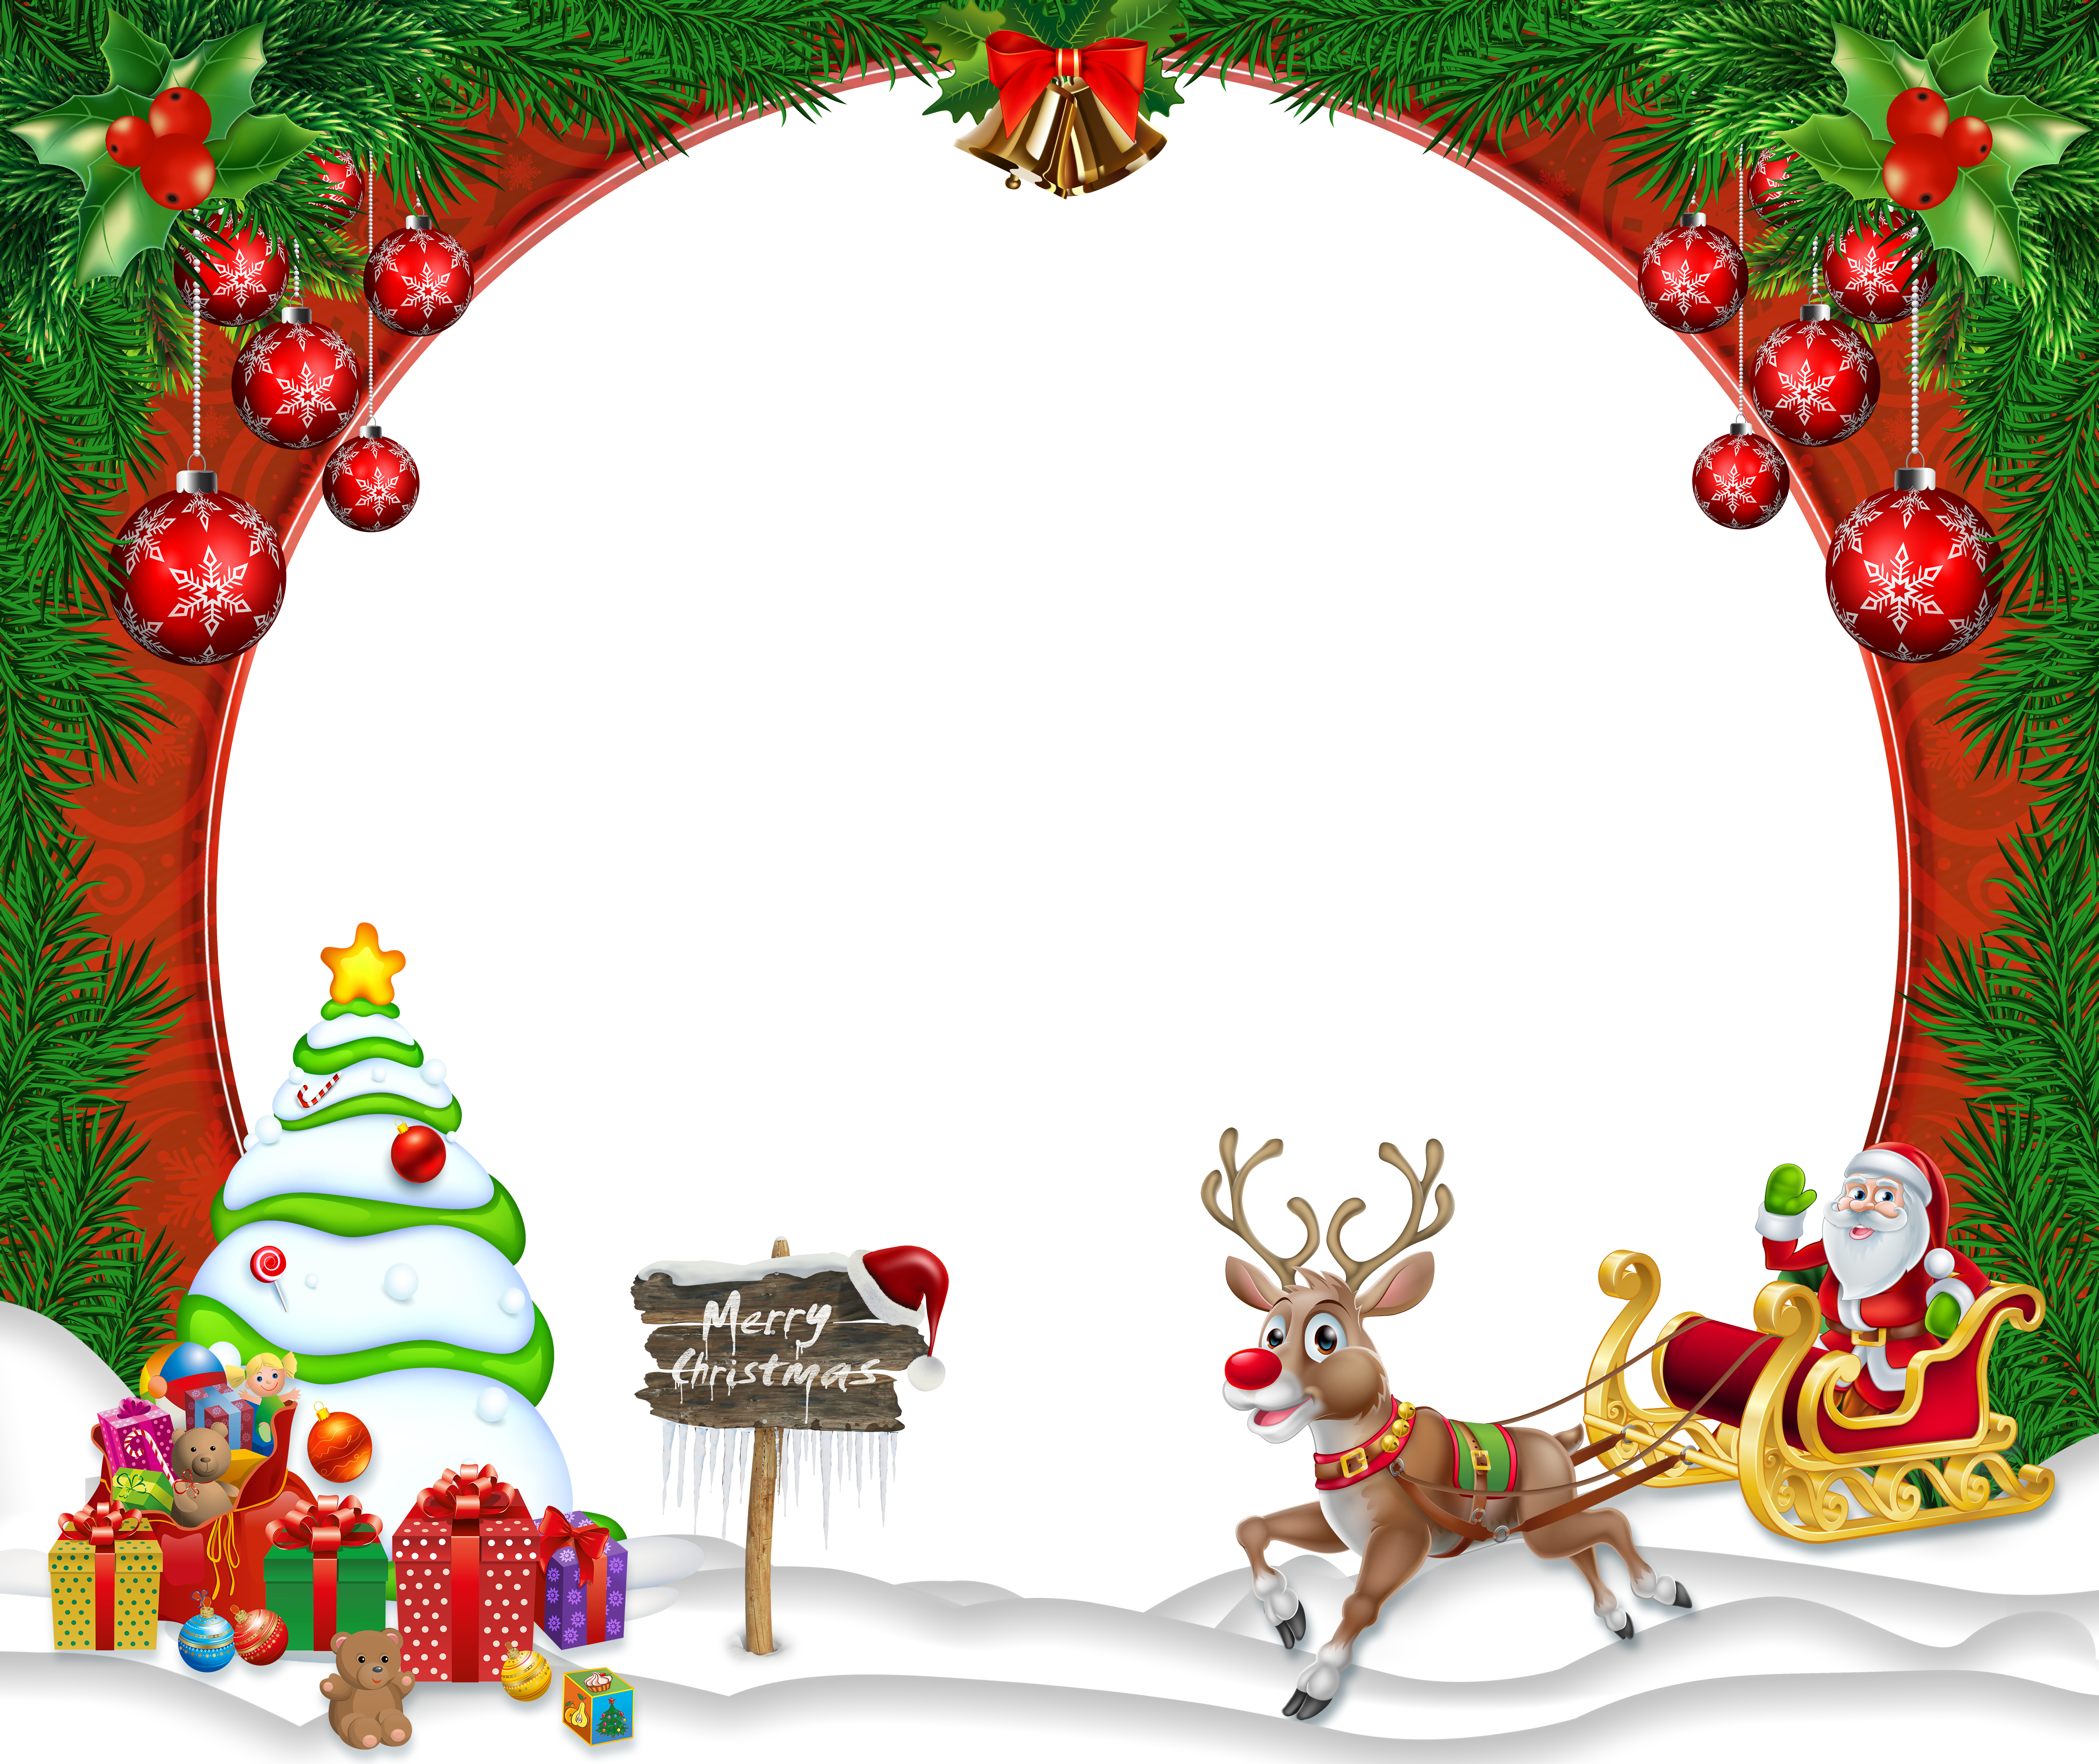 Merry Christmas Transparent Png Frame Gallery Yopriceville High Quality Images And Tra Christmas Frames Free Christmas Photo Frame Christmas Card Pictures